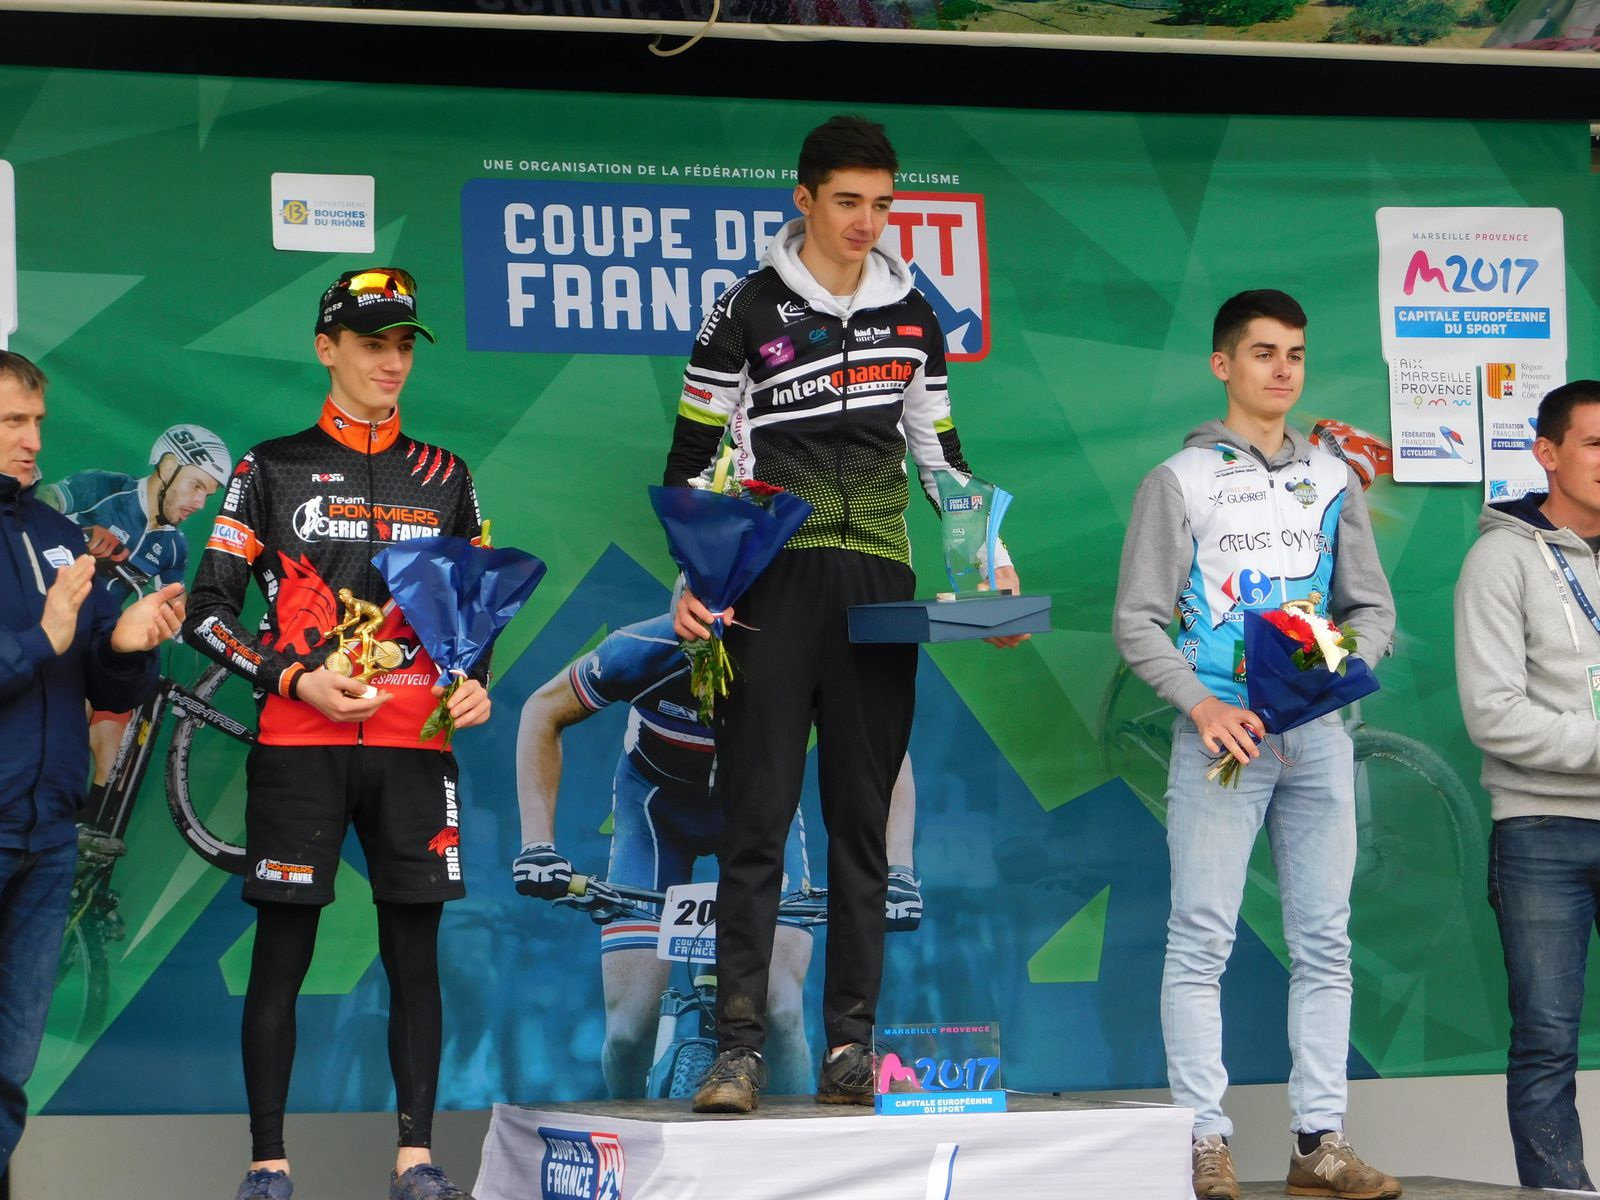 COUPE DE FRANCE XCO MARSEILLE 25/03/2017